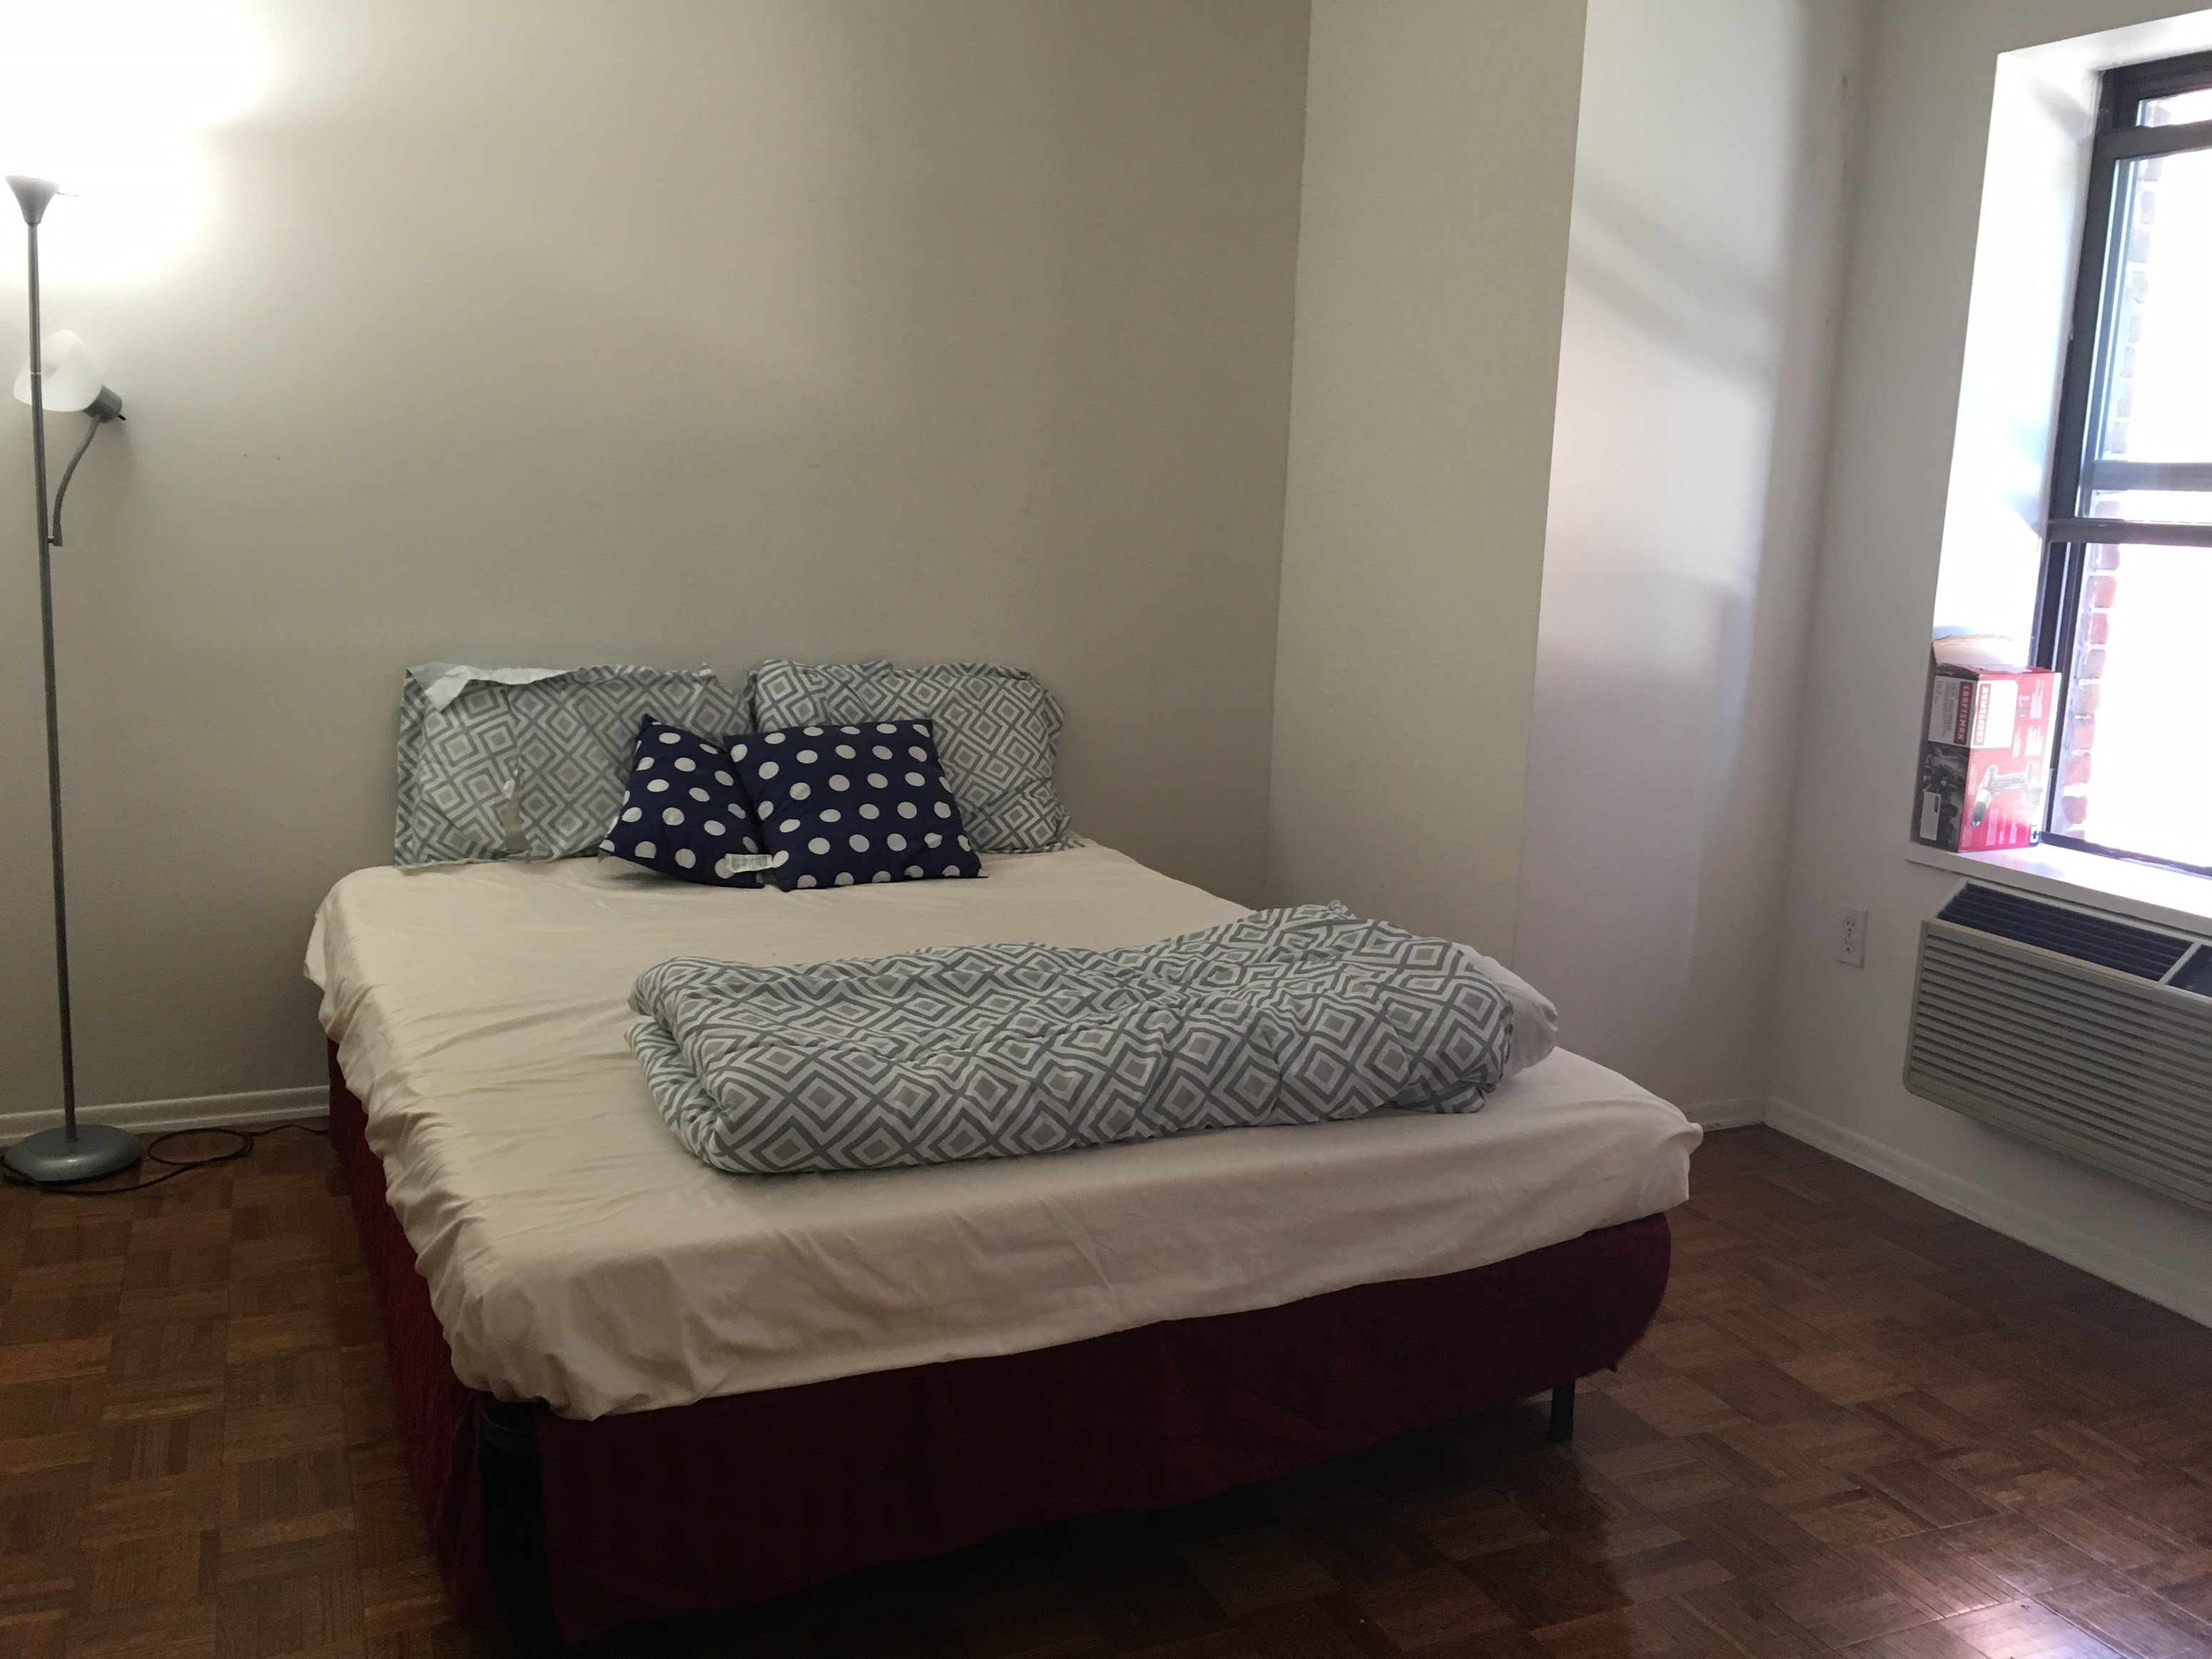 Offered House Apartment Flat Commercial Space For Rent In New York